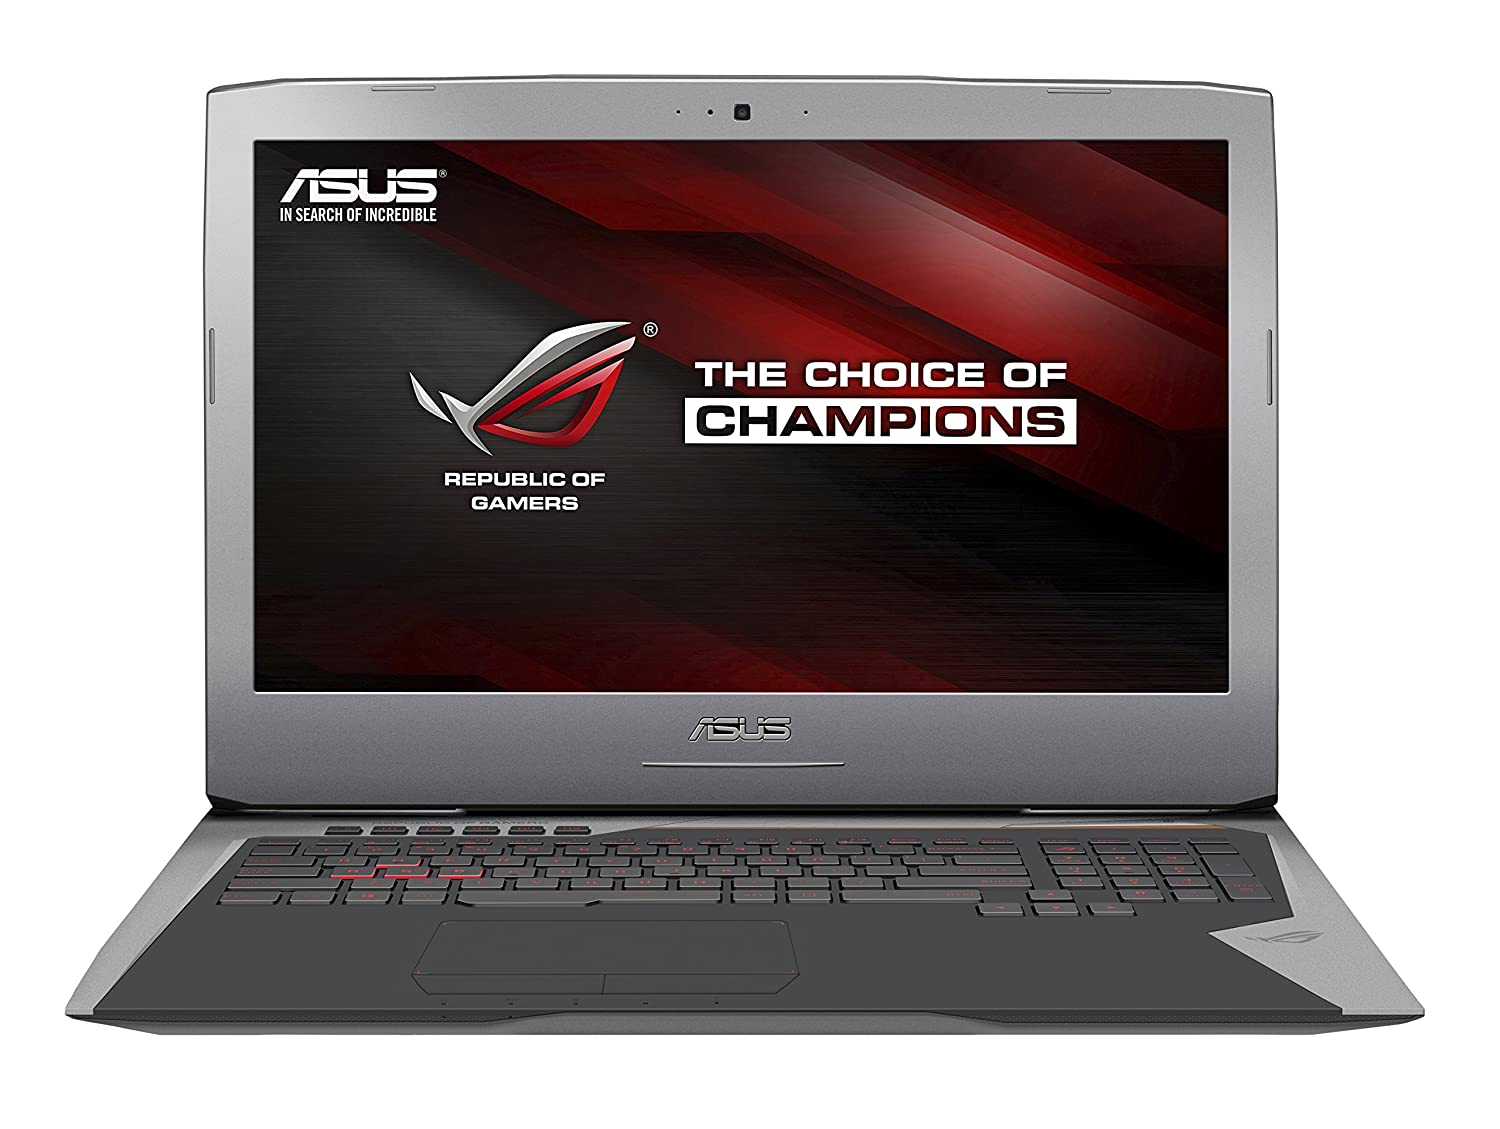 ASUS ROG G752 Series High Performance Gaming Laptop